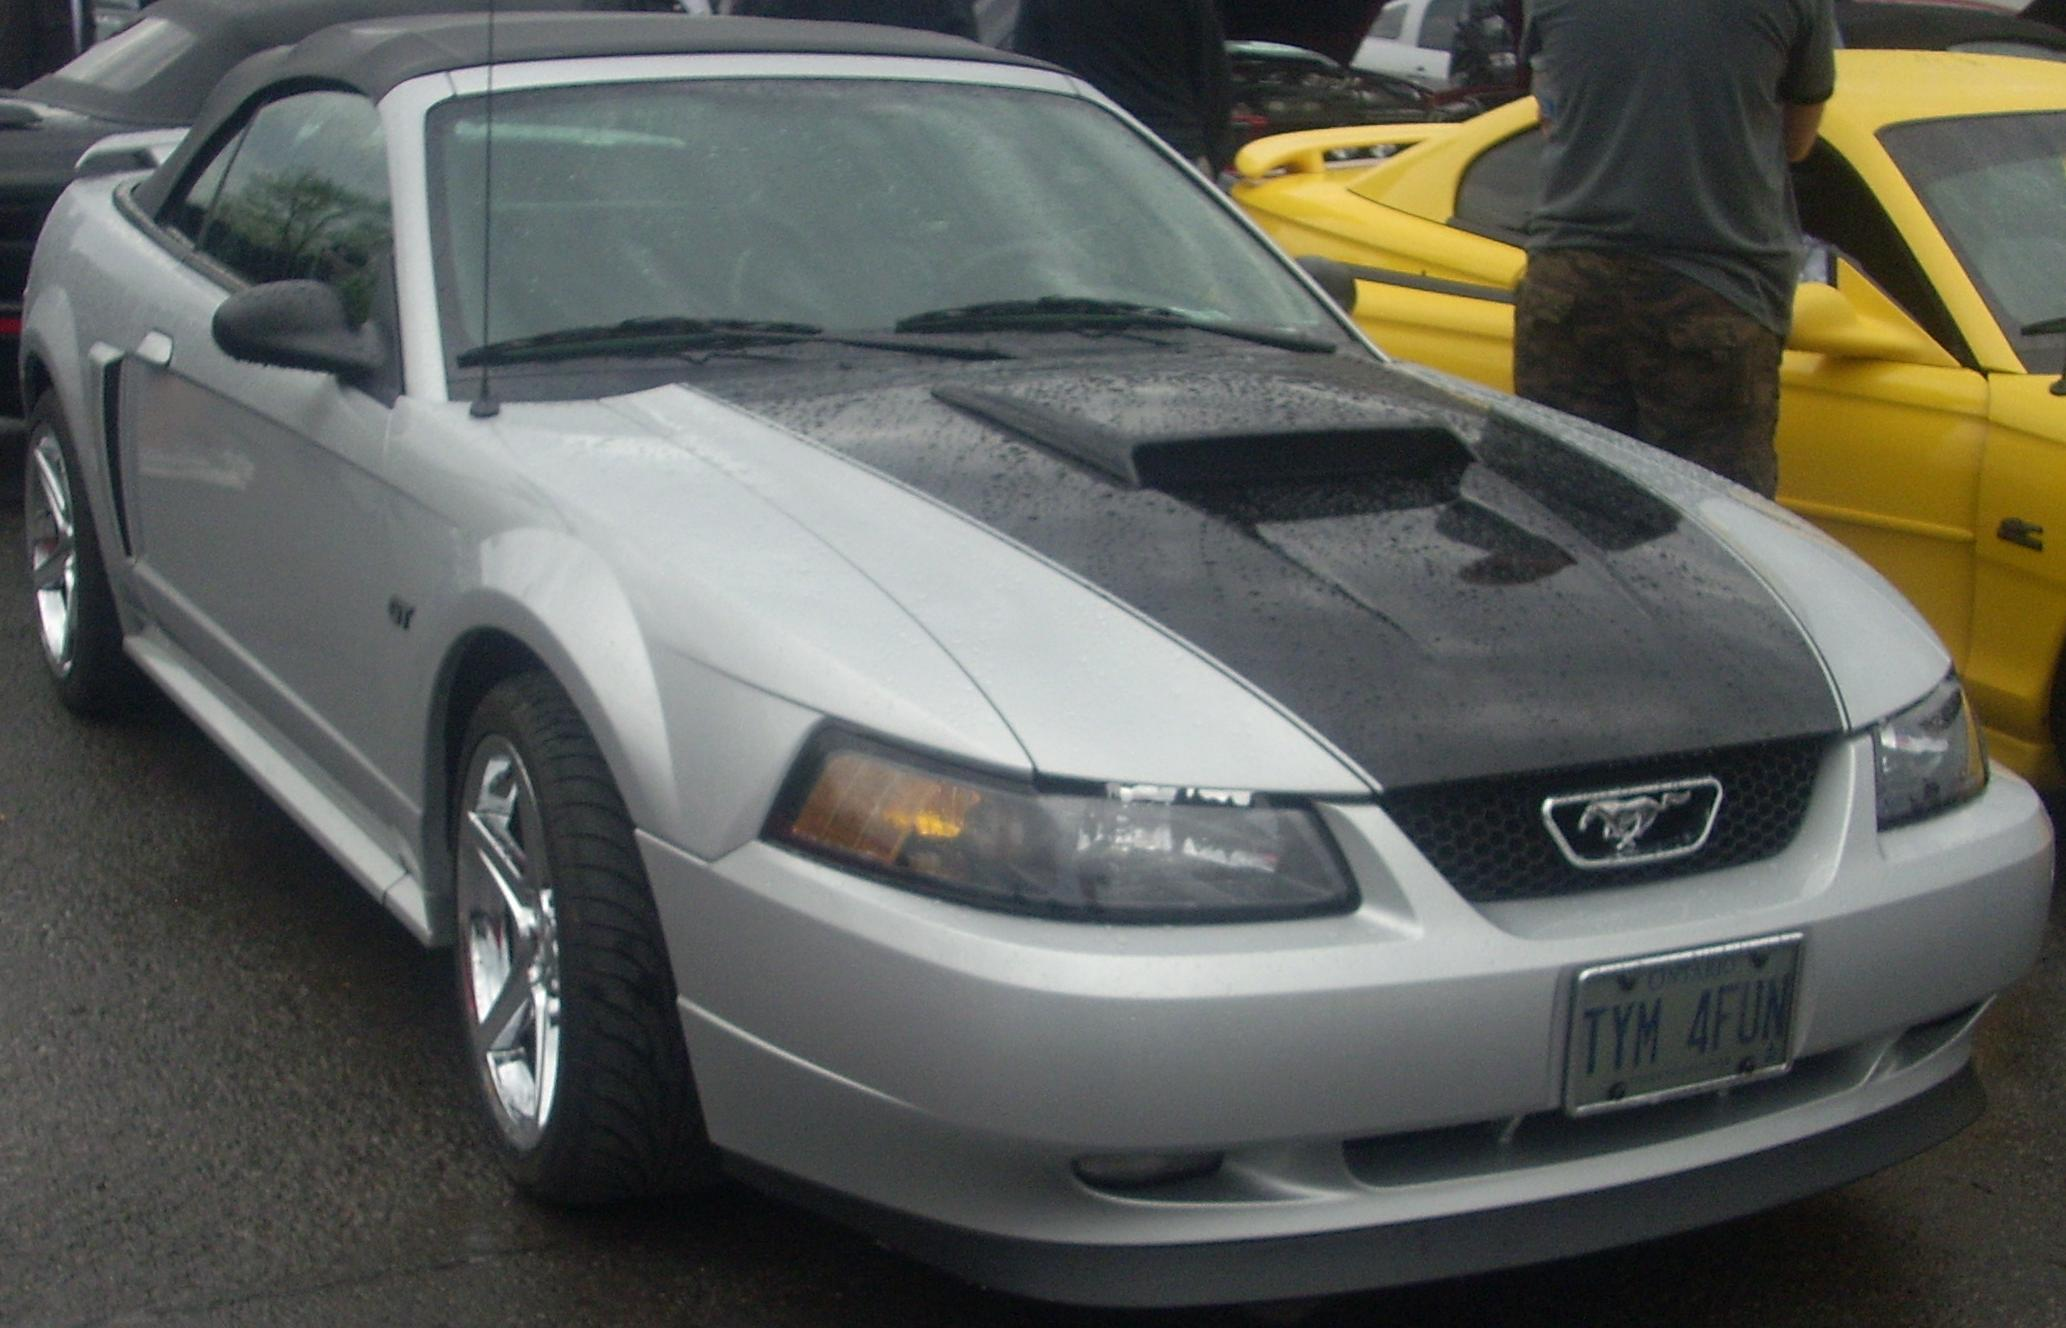 File:Tuned SN95 Ford Mustang GT Convertible (Sterling Ford).jpg - Wikimedia Commons